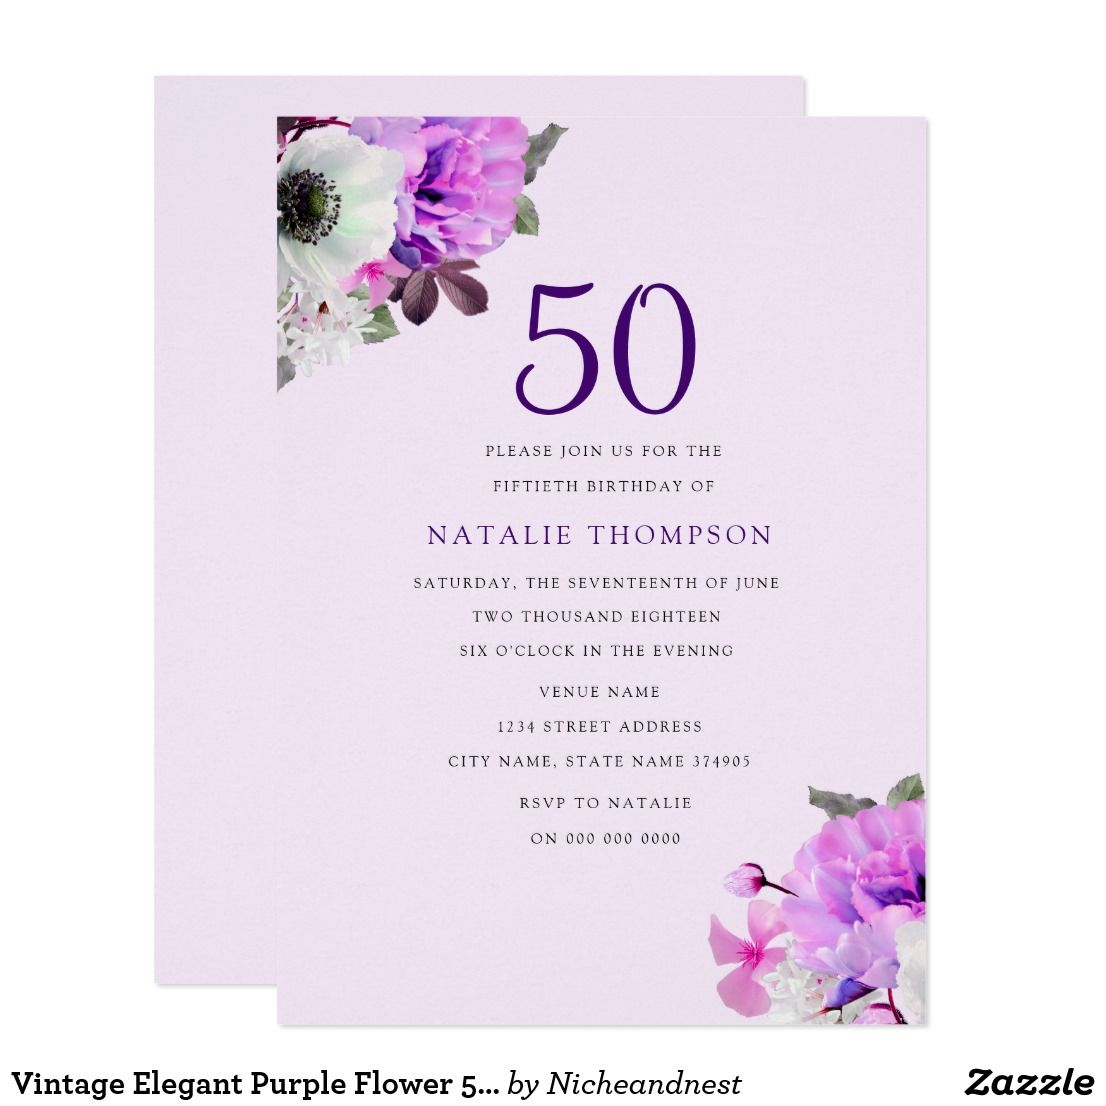 Vintage Elegant Purple Flower 50th Birthday Invite Pinterest